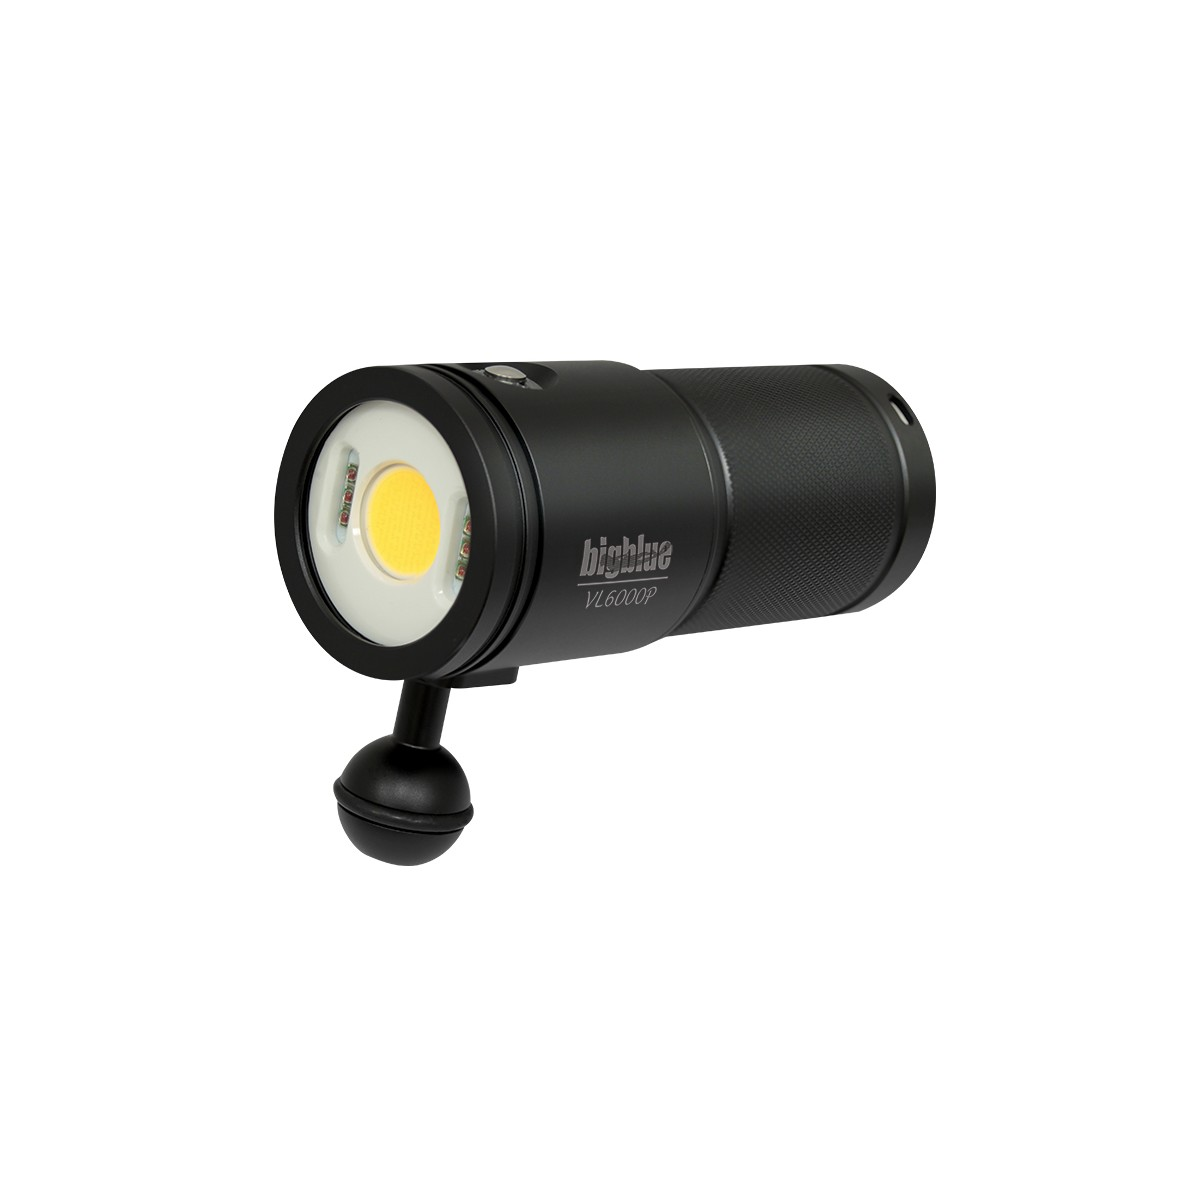 Bigblue 6000 Lumen Video Light (VL6000P)